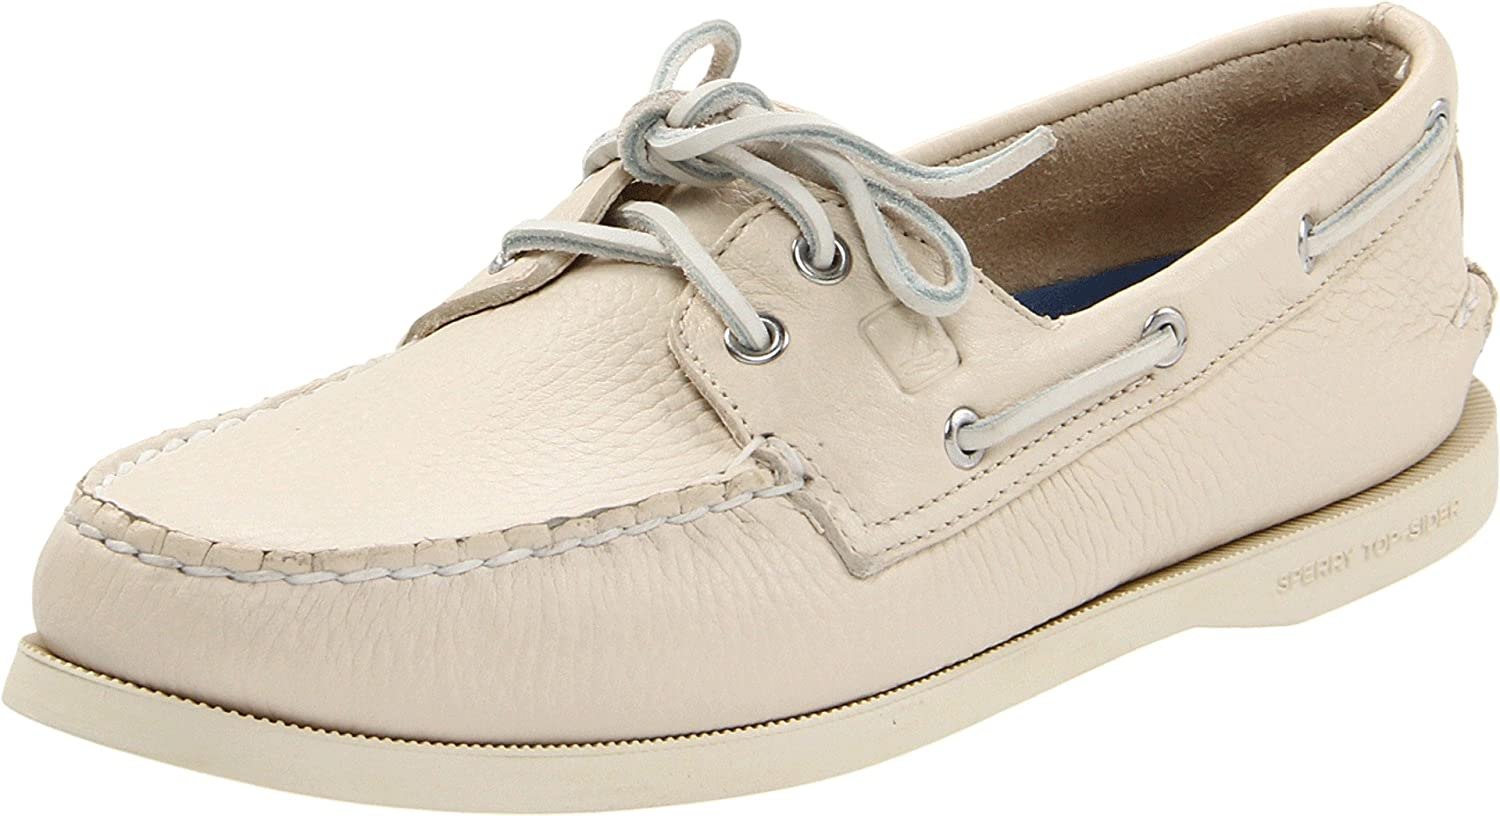 Ice Sperry Women's A O 2-Eye Boat shoes